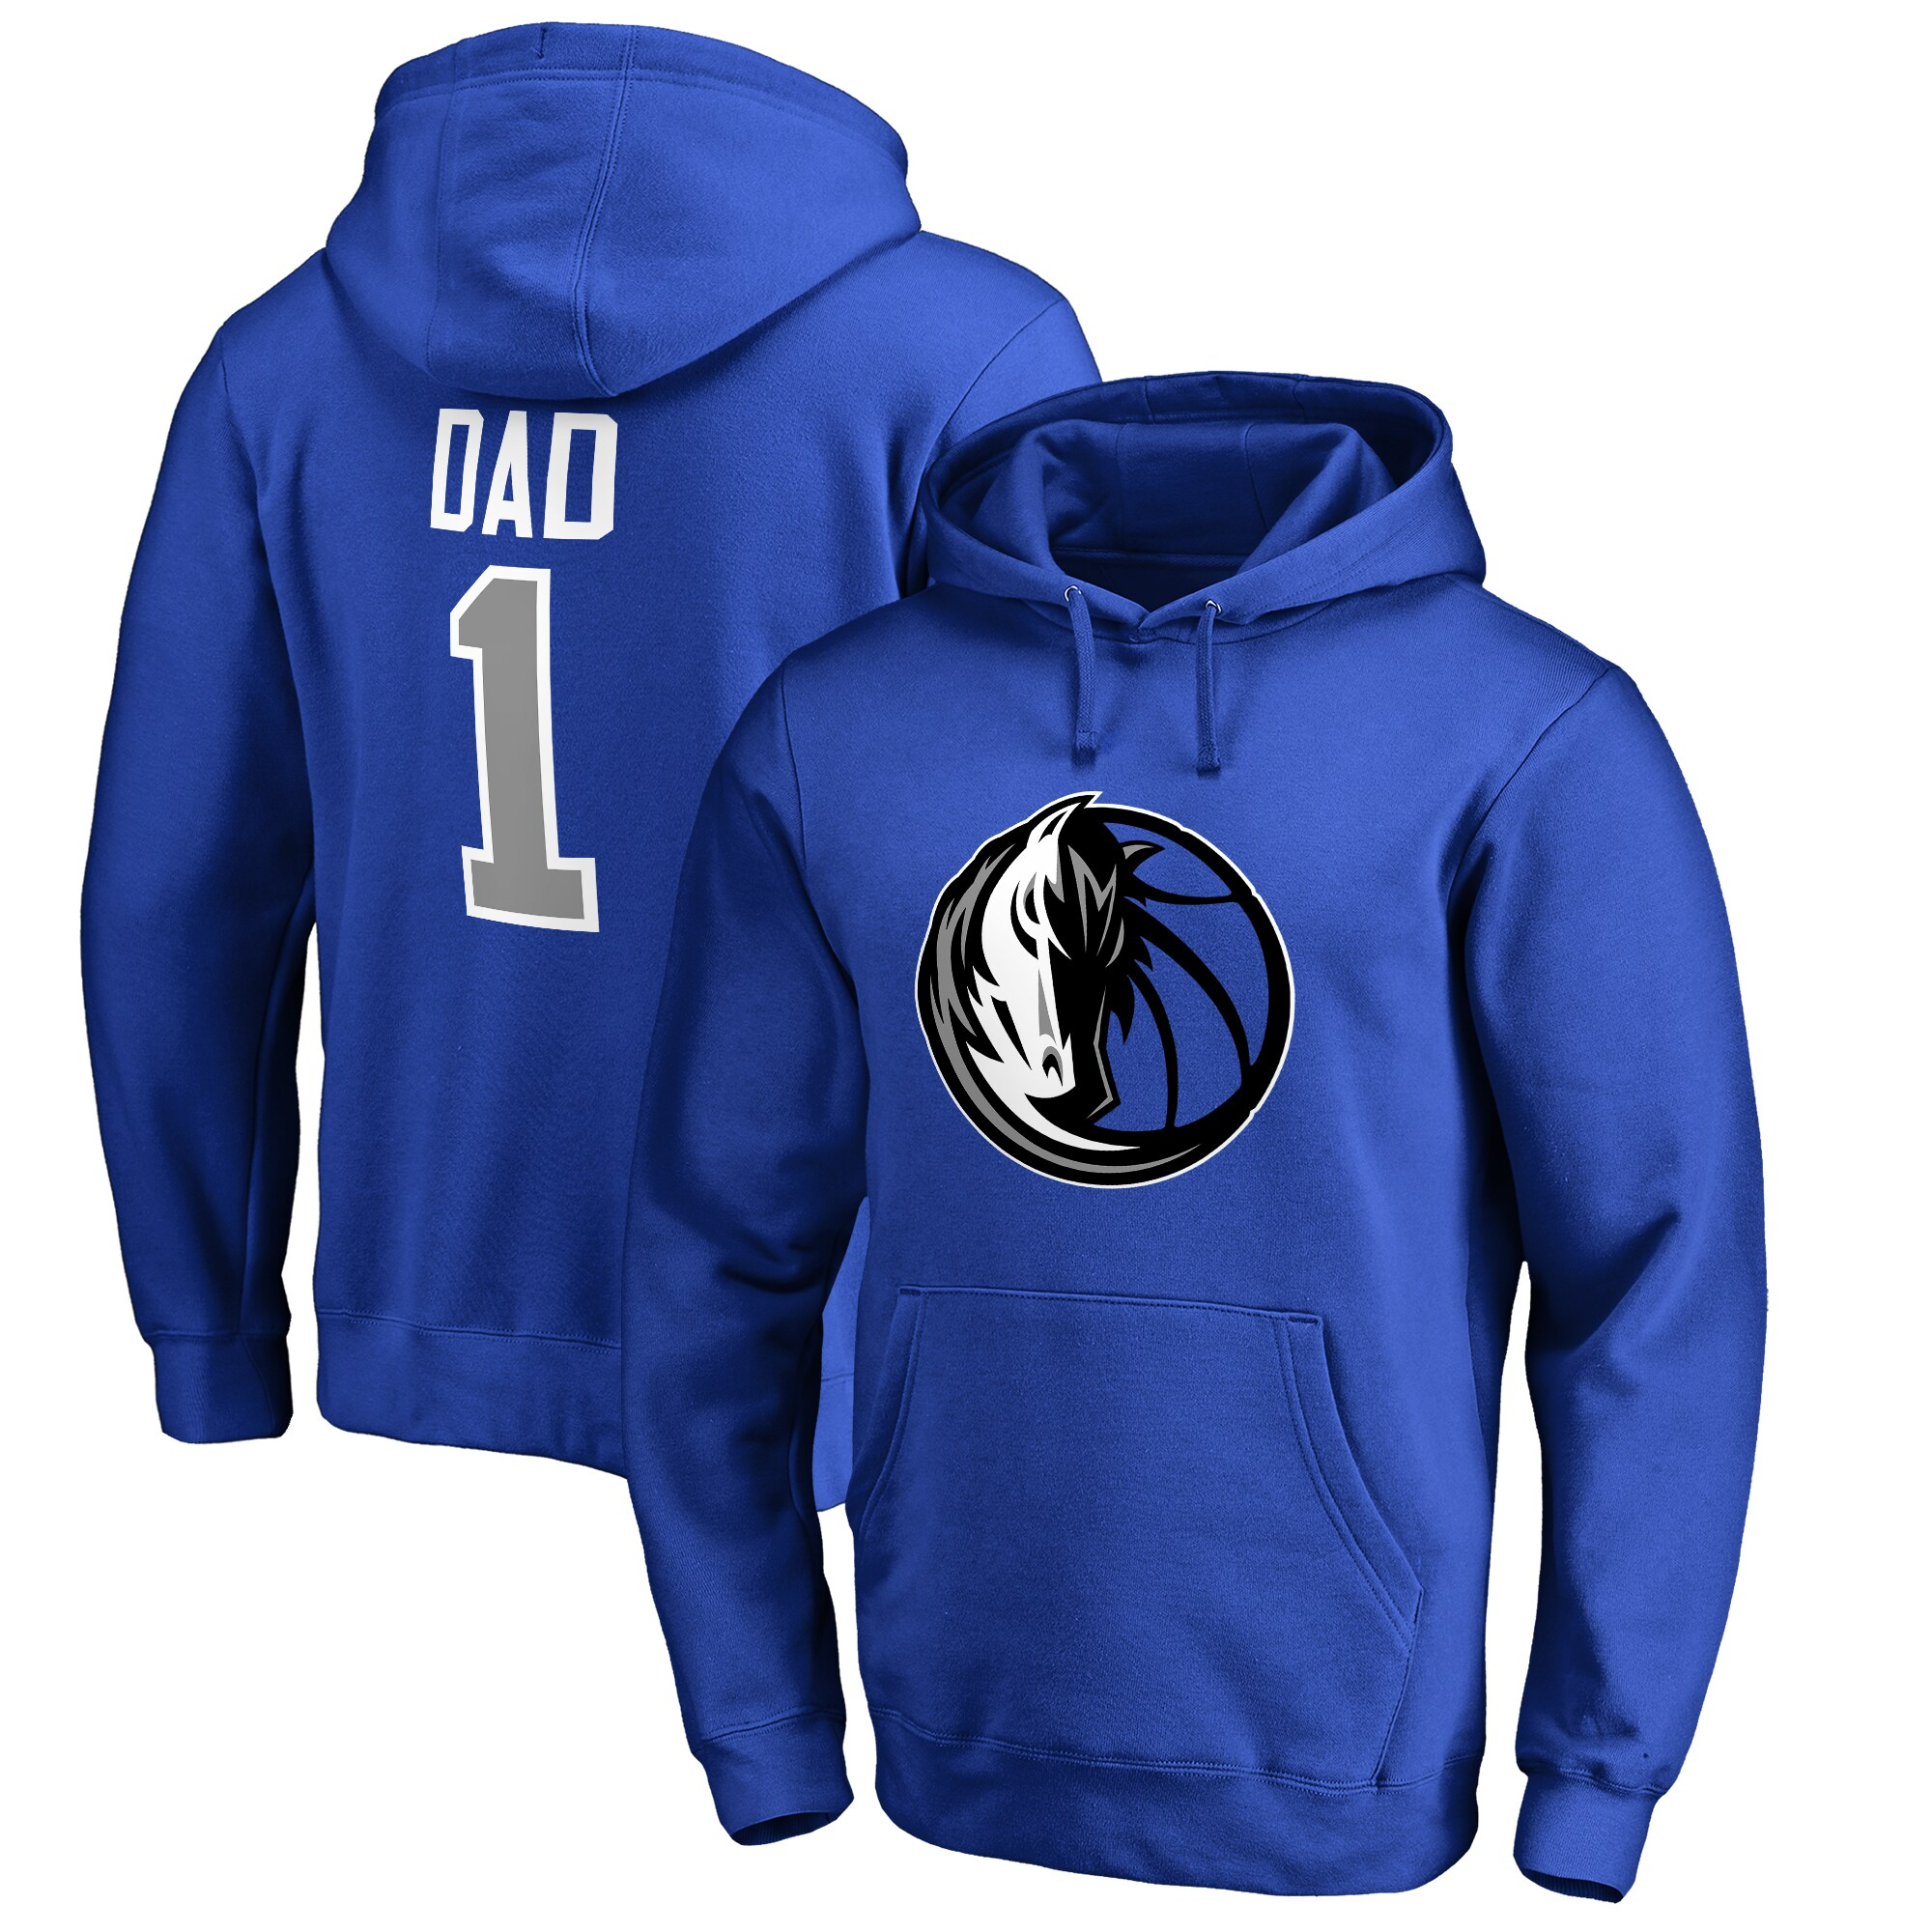 Dallas Mavericks #1 Dad Pullover Hoodie - Royal